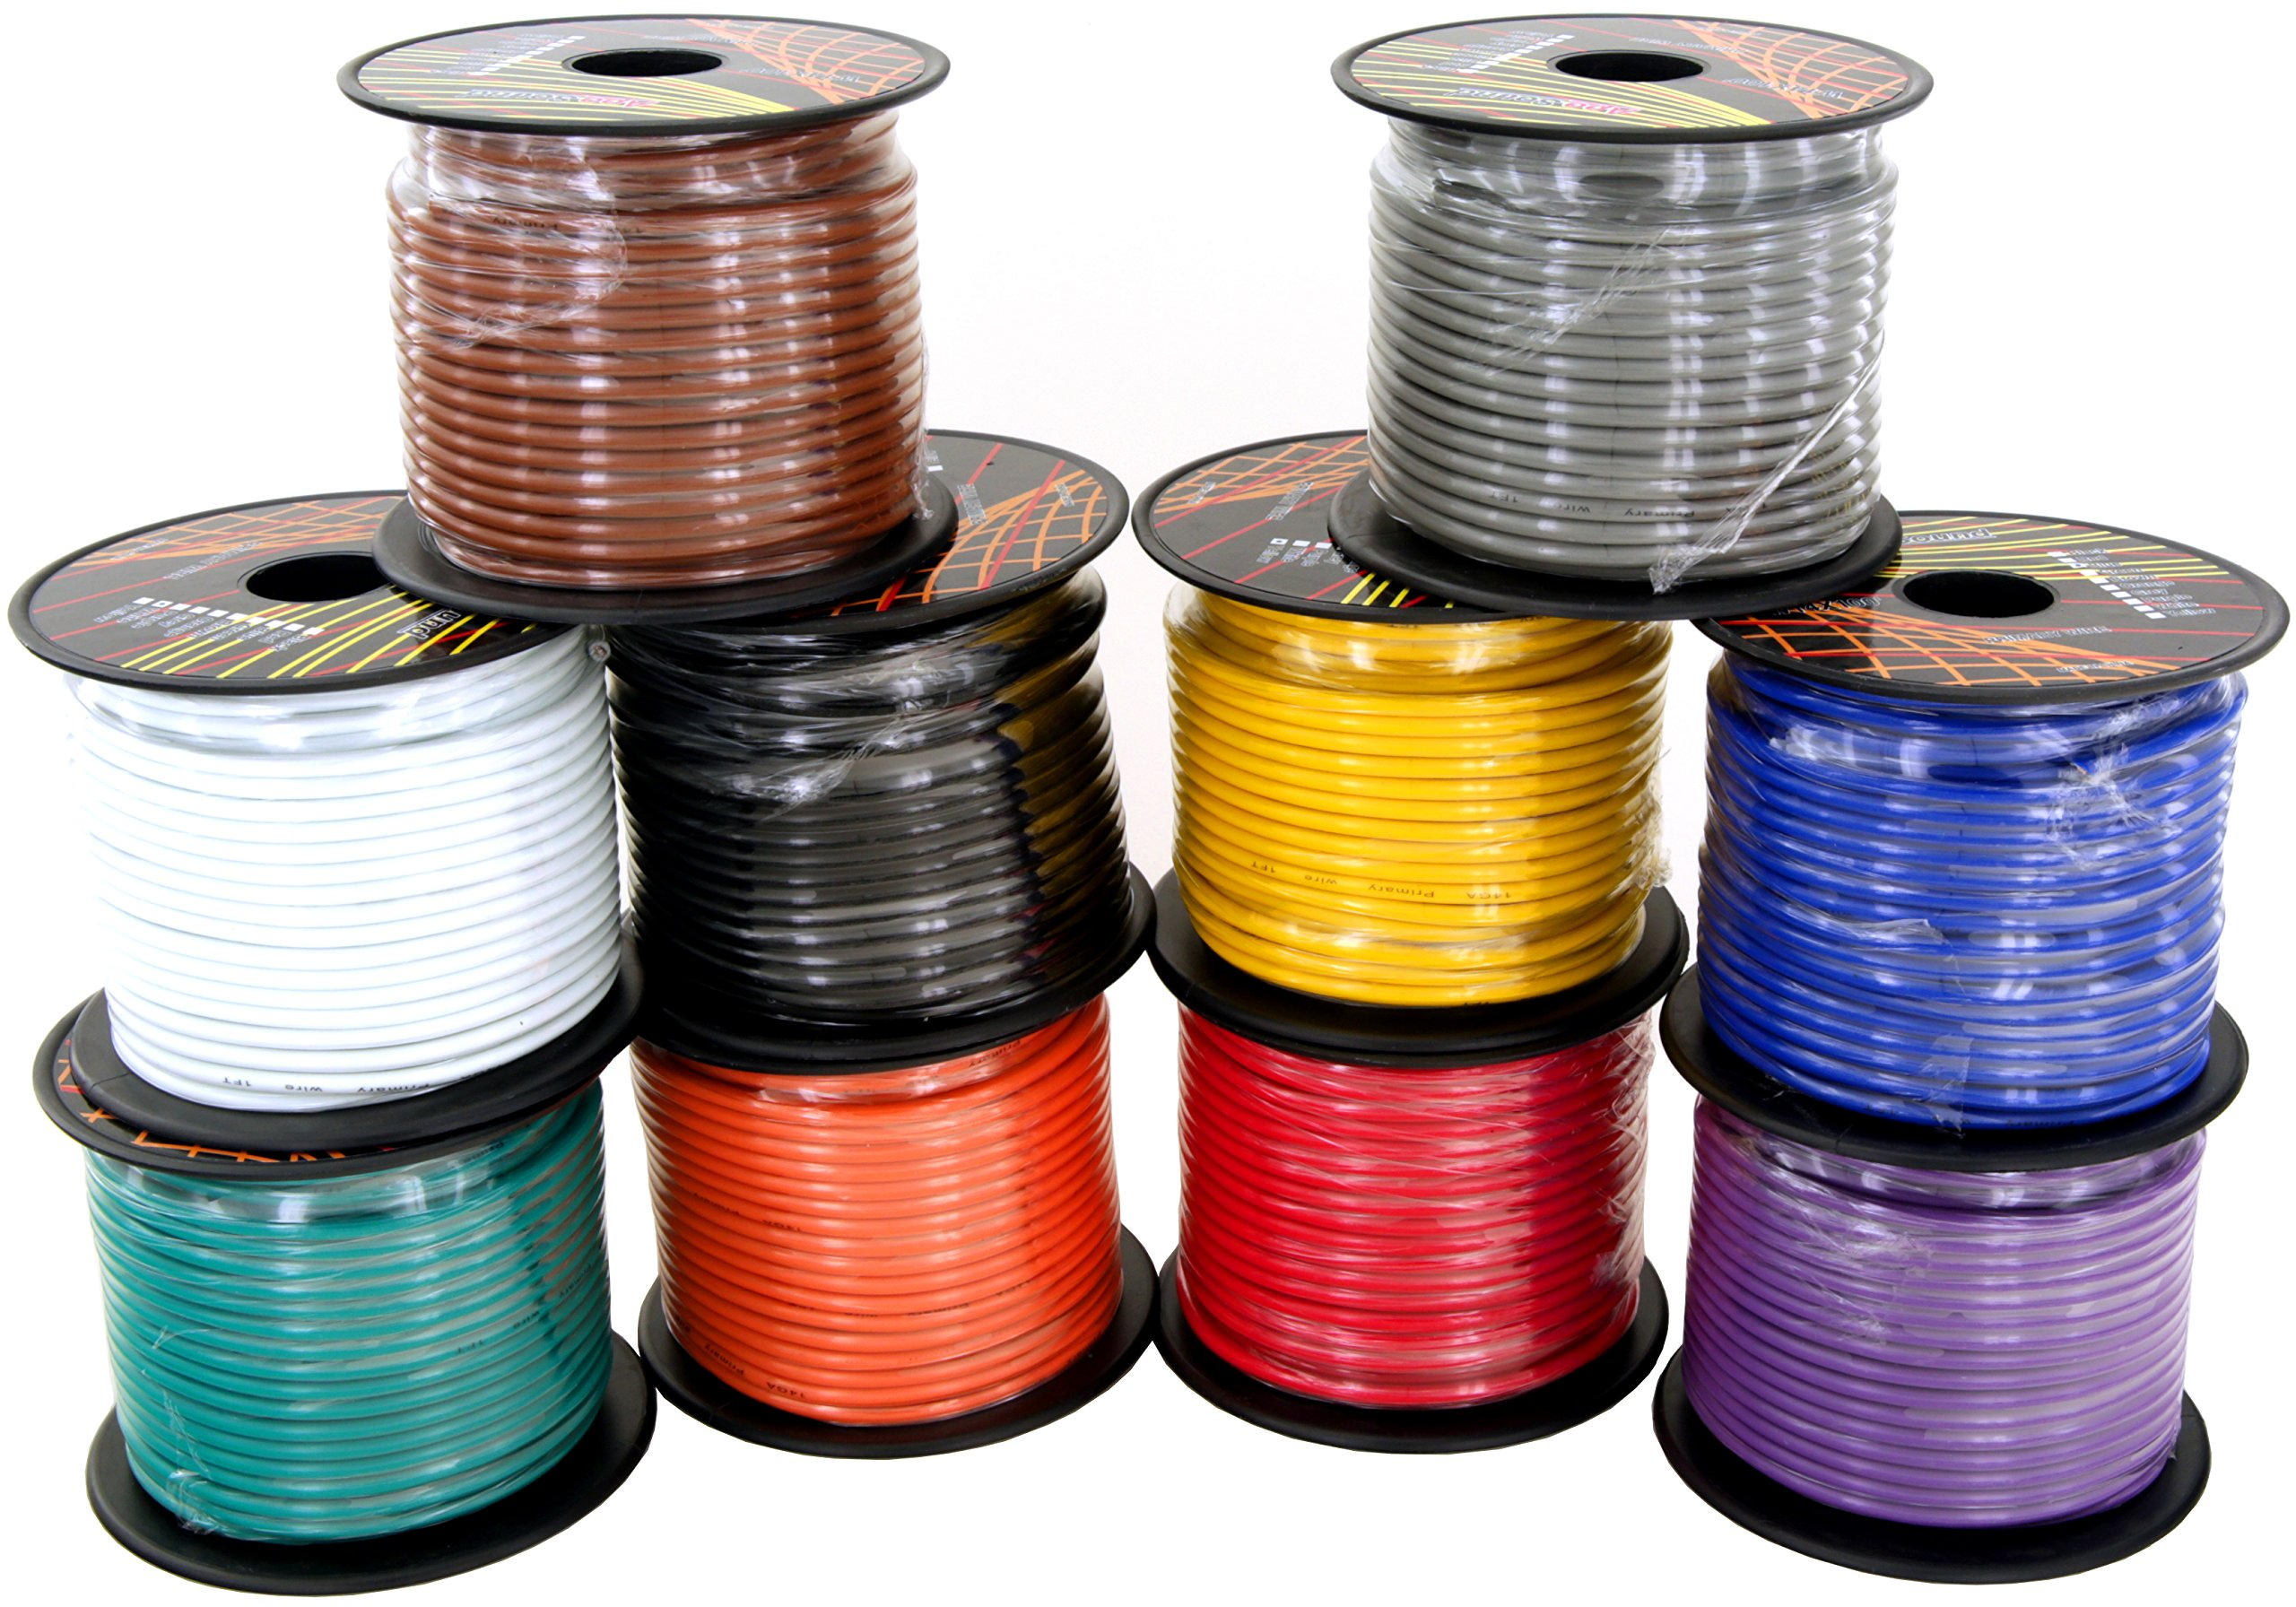 GS Power 14 Gauge Copper Clad Aluminum Primary Cable in 10 Colors Roll Combo Pack | 100 ft per Roll (1000 Feet of Total Wire) | Also Available in 4 & 6 Rolls Color Set